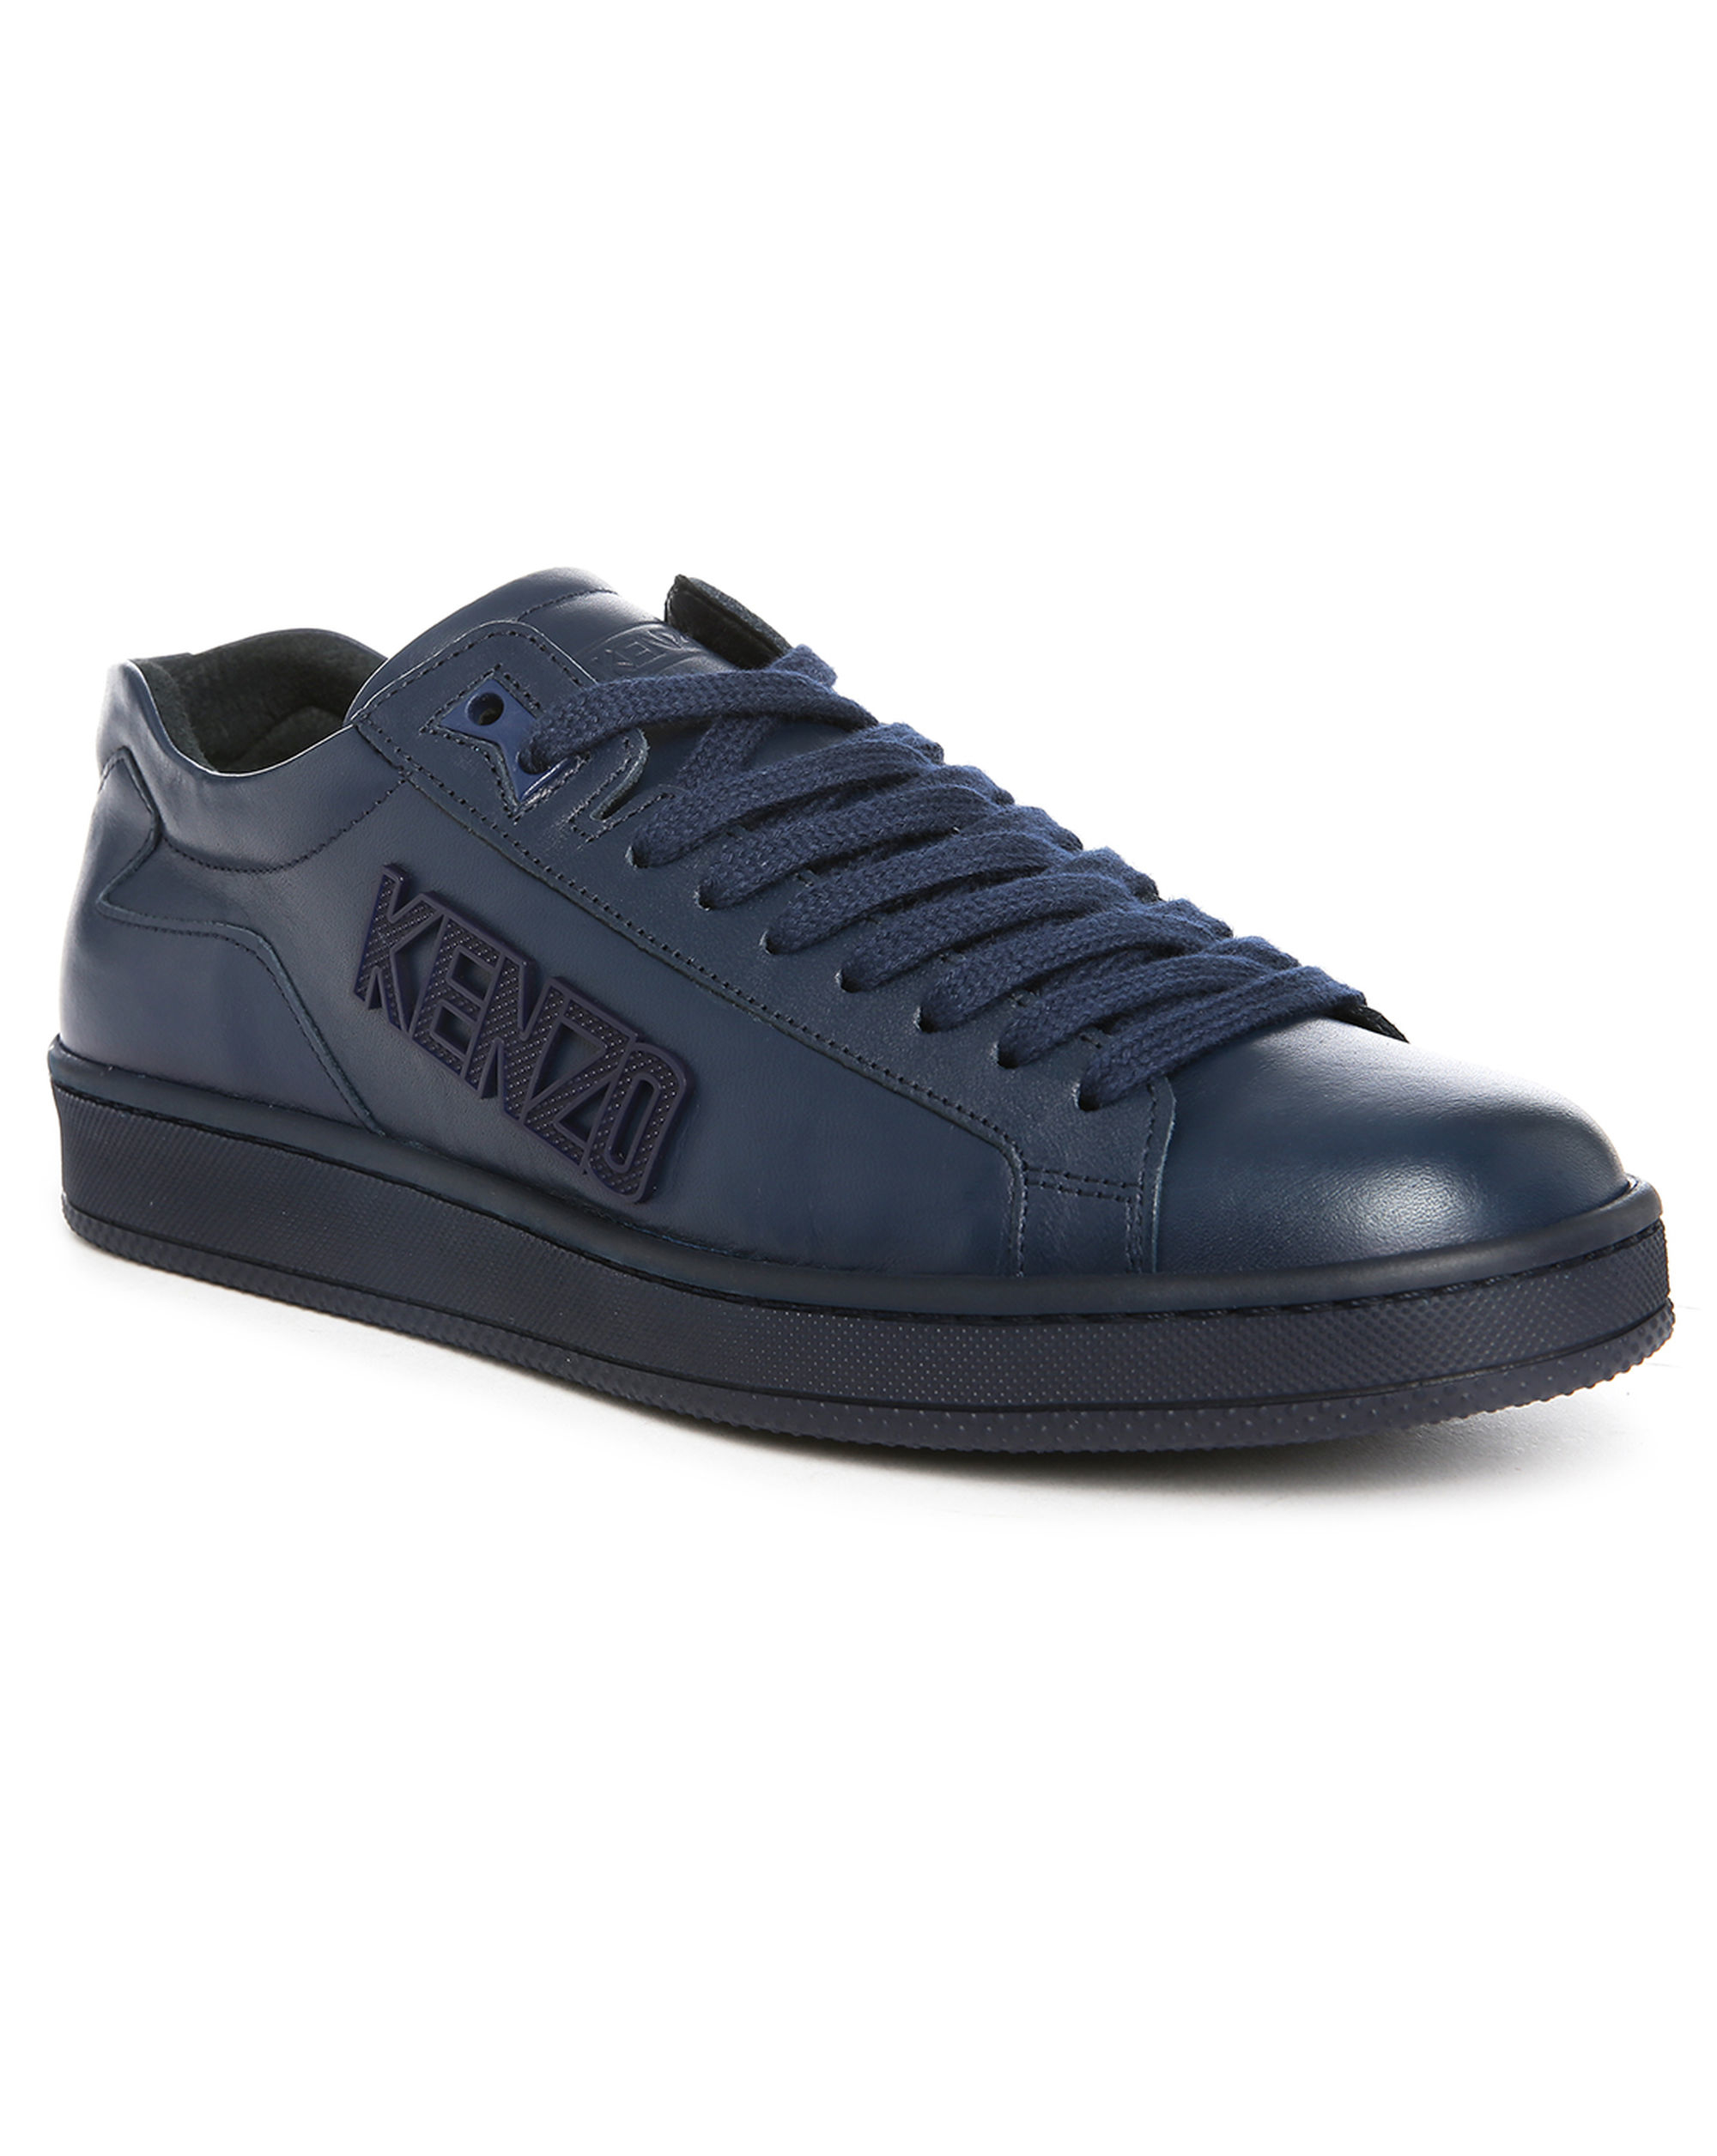 All Leather Us Navy Shoes